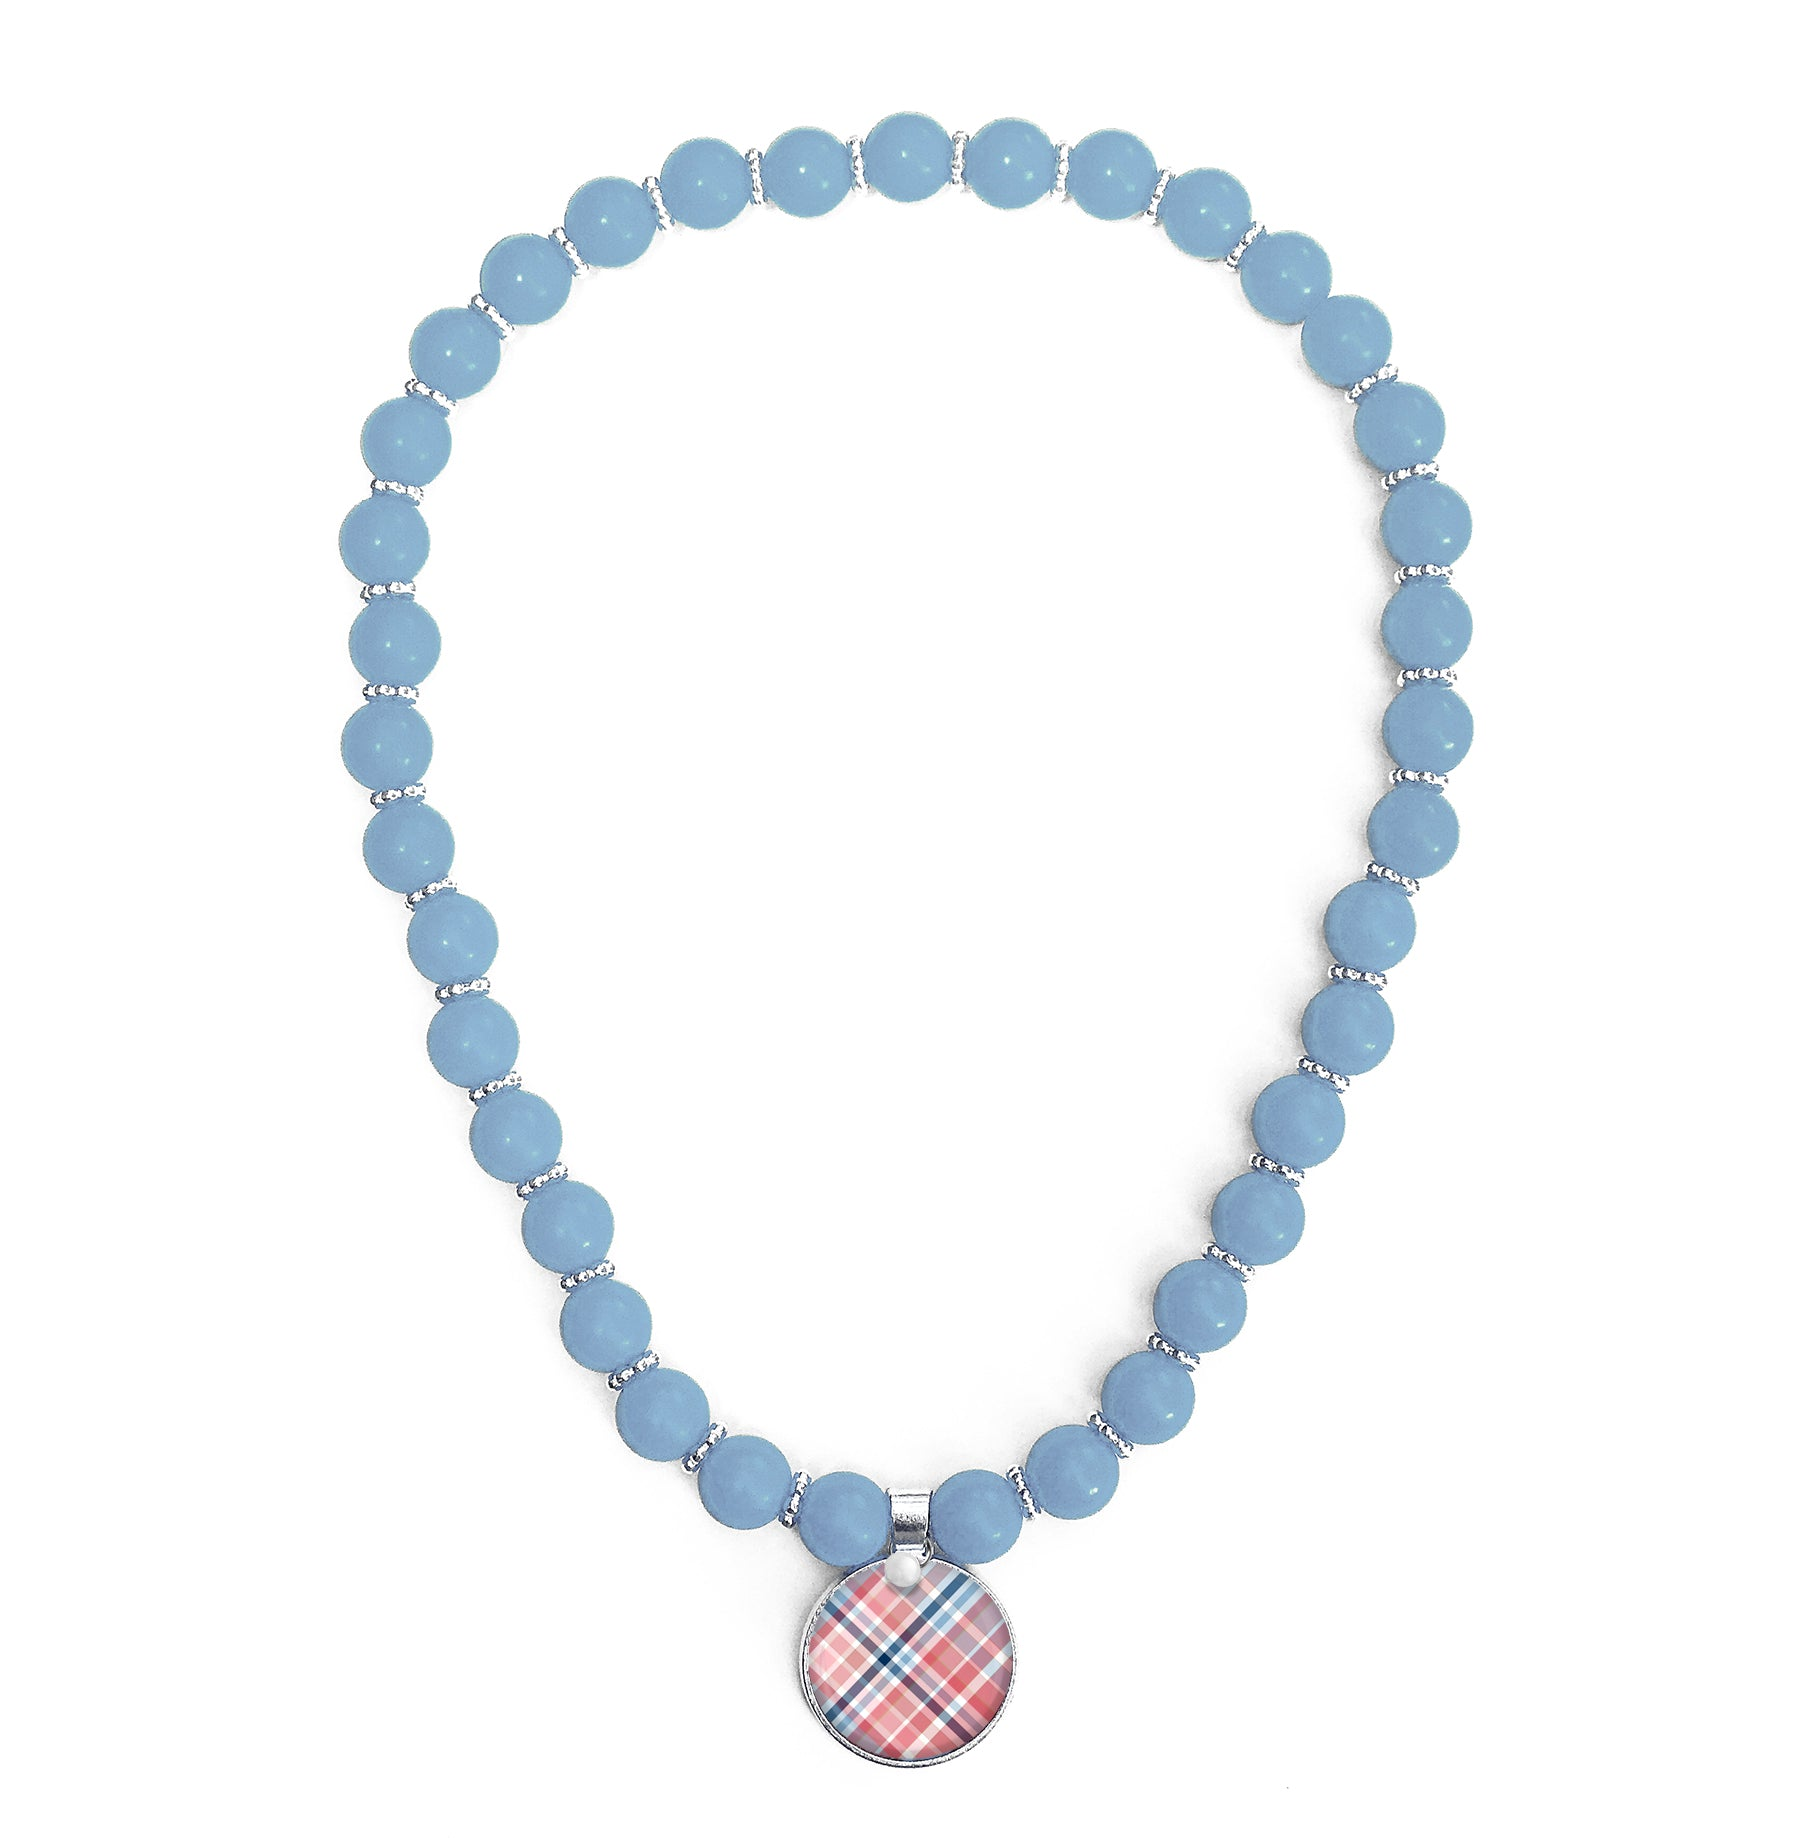 Madras Nantucket Plaid Beaded Necklace